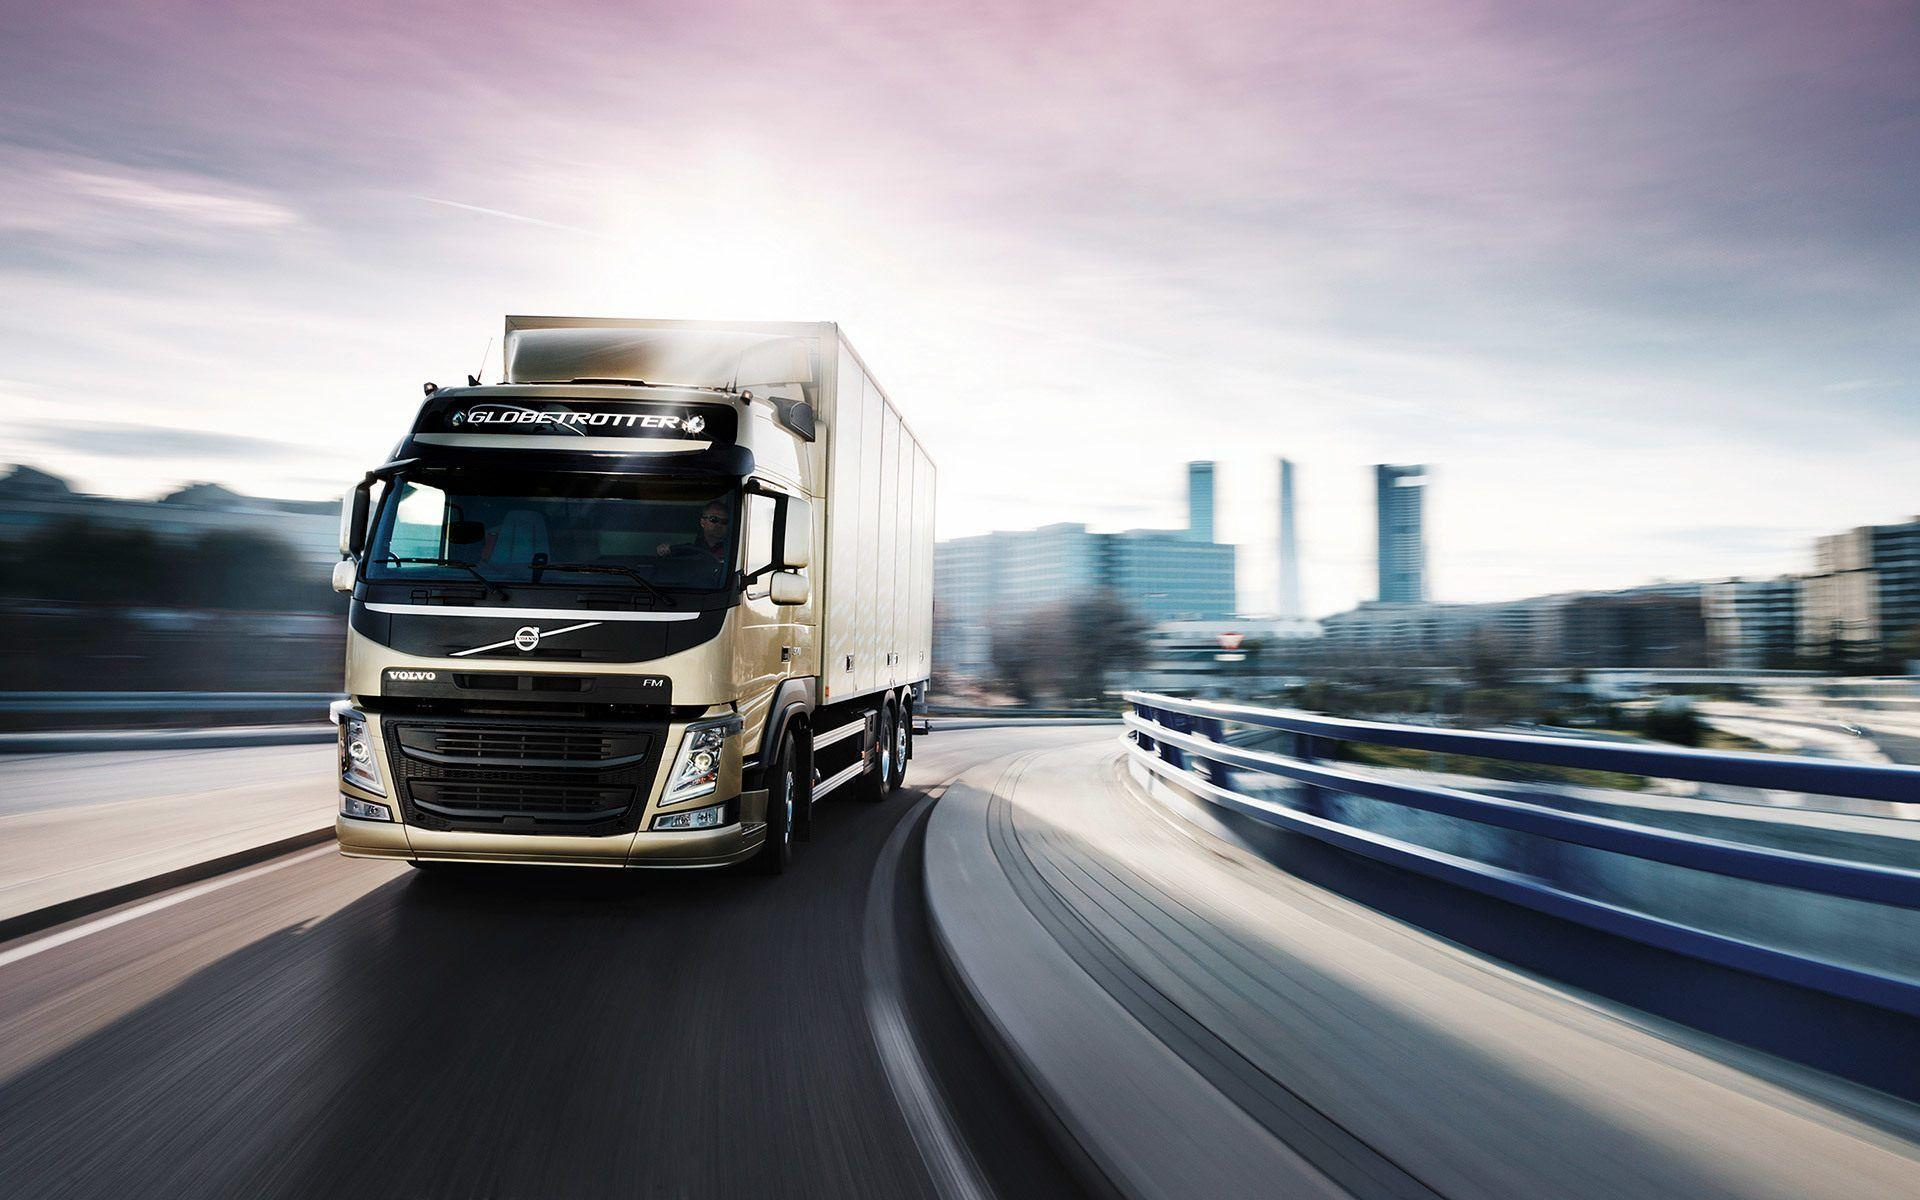 Truck Wallpapers Group